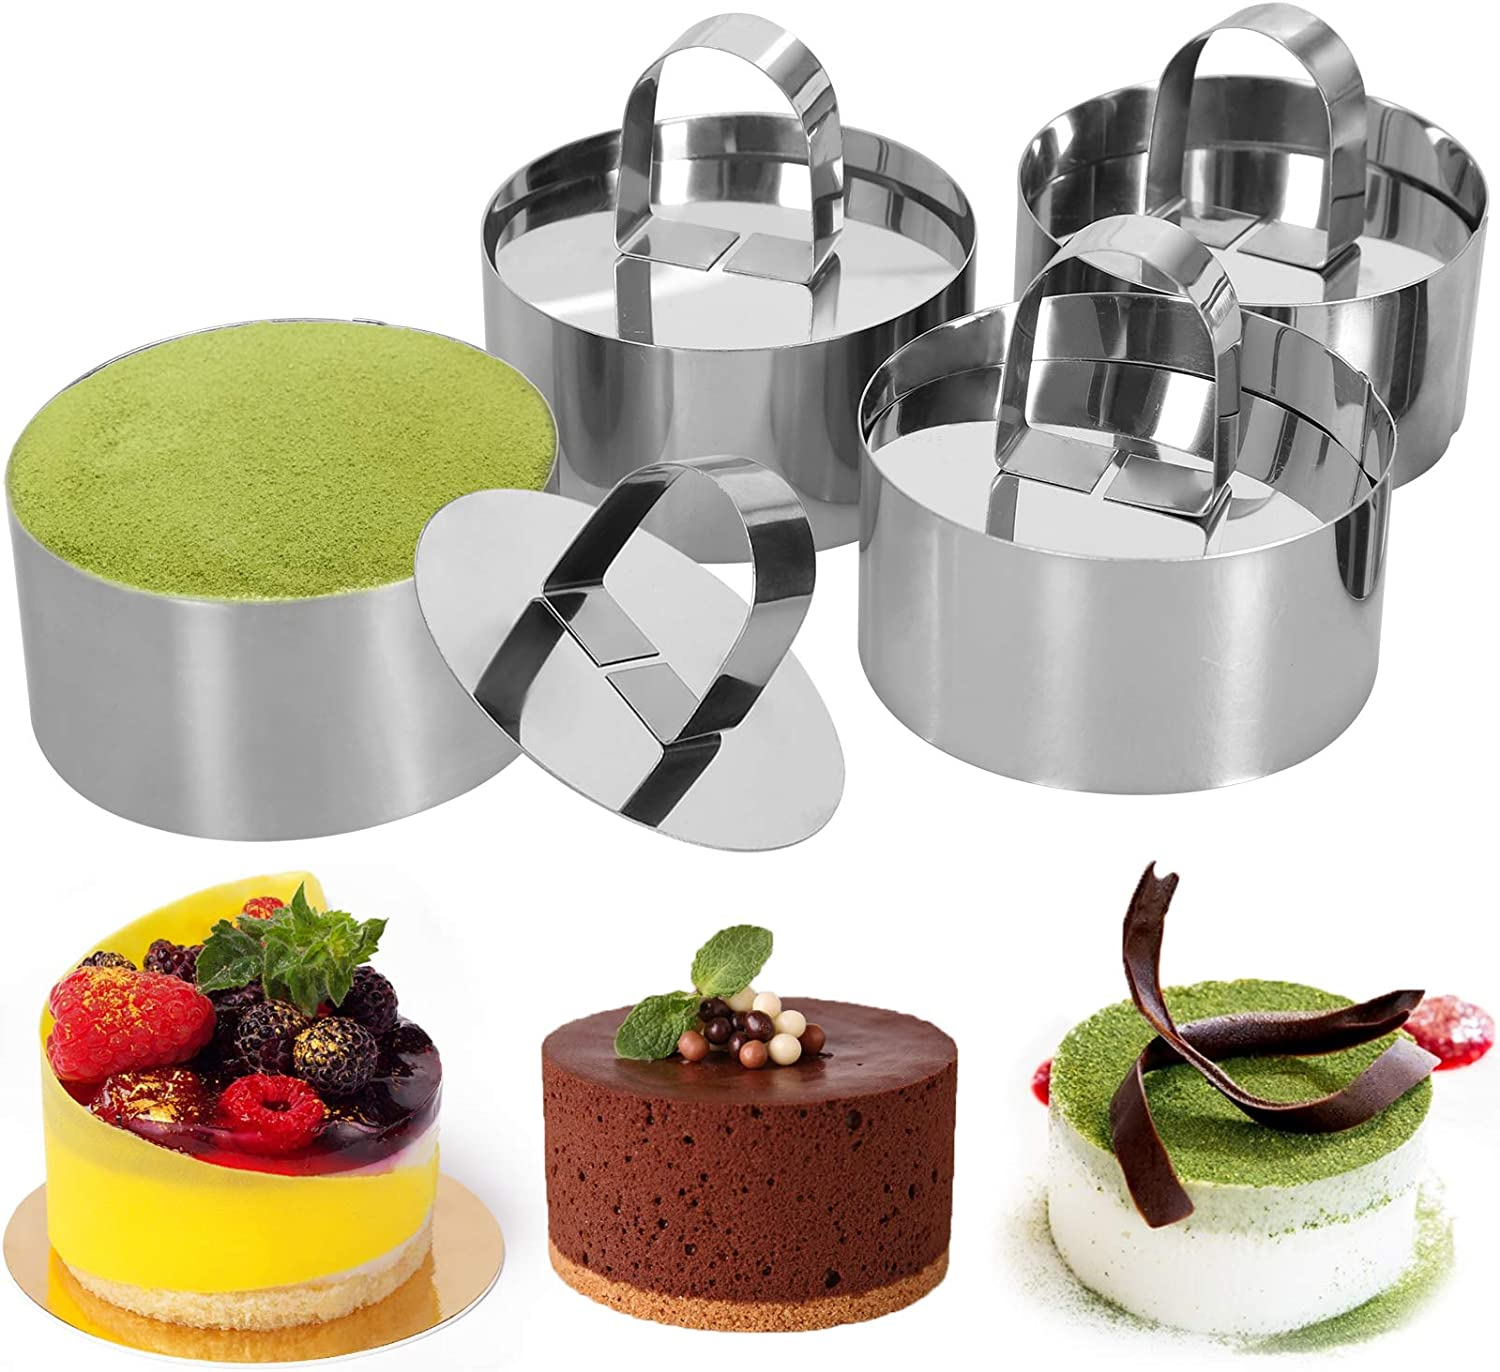 Round Stainless Steel Cake Rings, 3 x 3 inch Dessert Mousse and Pastry Baking Mold, Set of 4 (4 Rings,4 Pushers) Cooking Rings